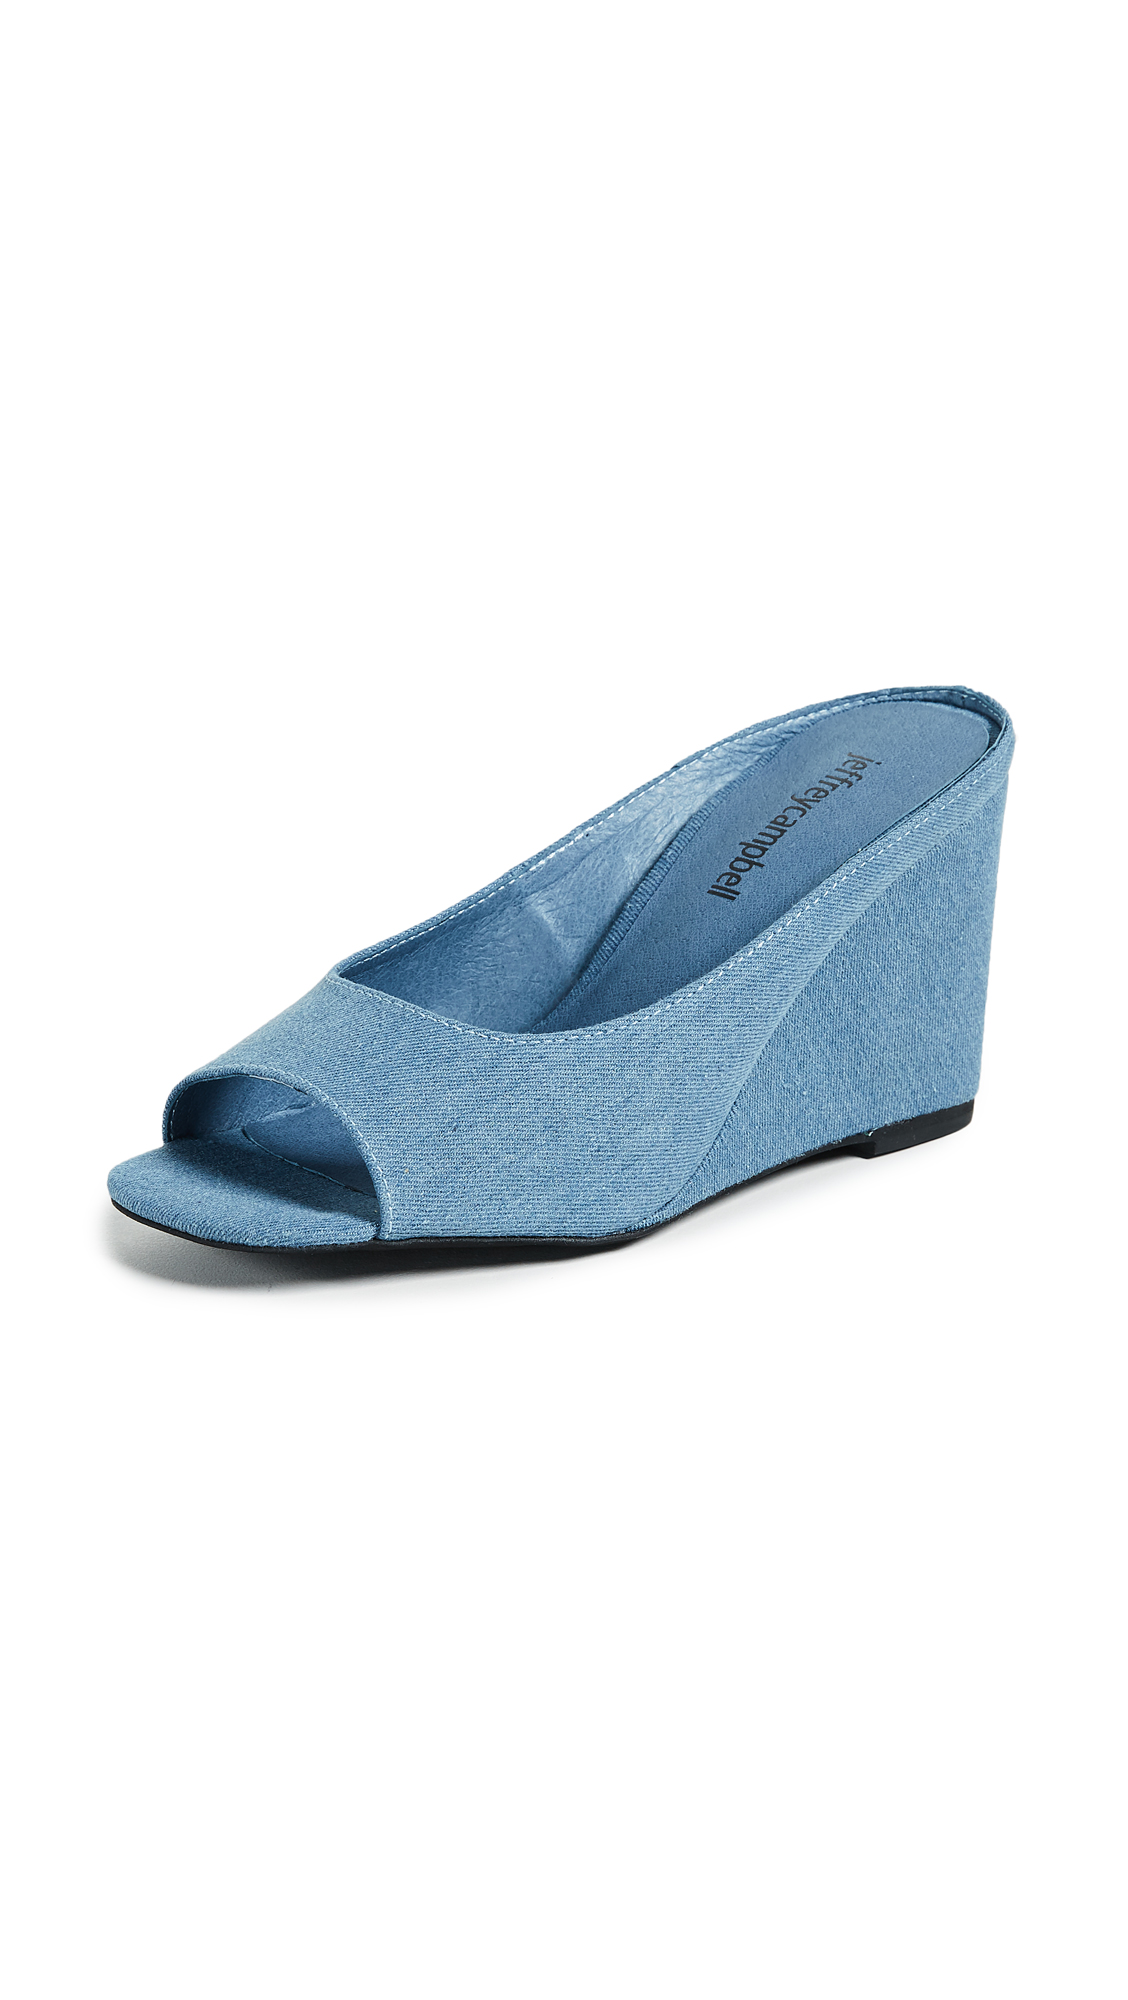 Jeffrey Campbell Generous Peep Toe Wedges - Blue Denim